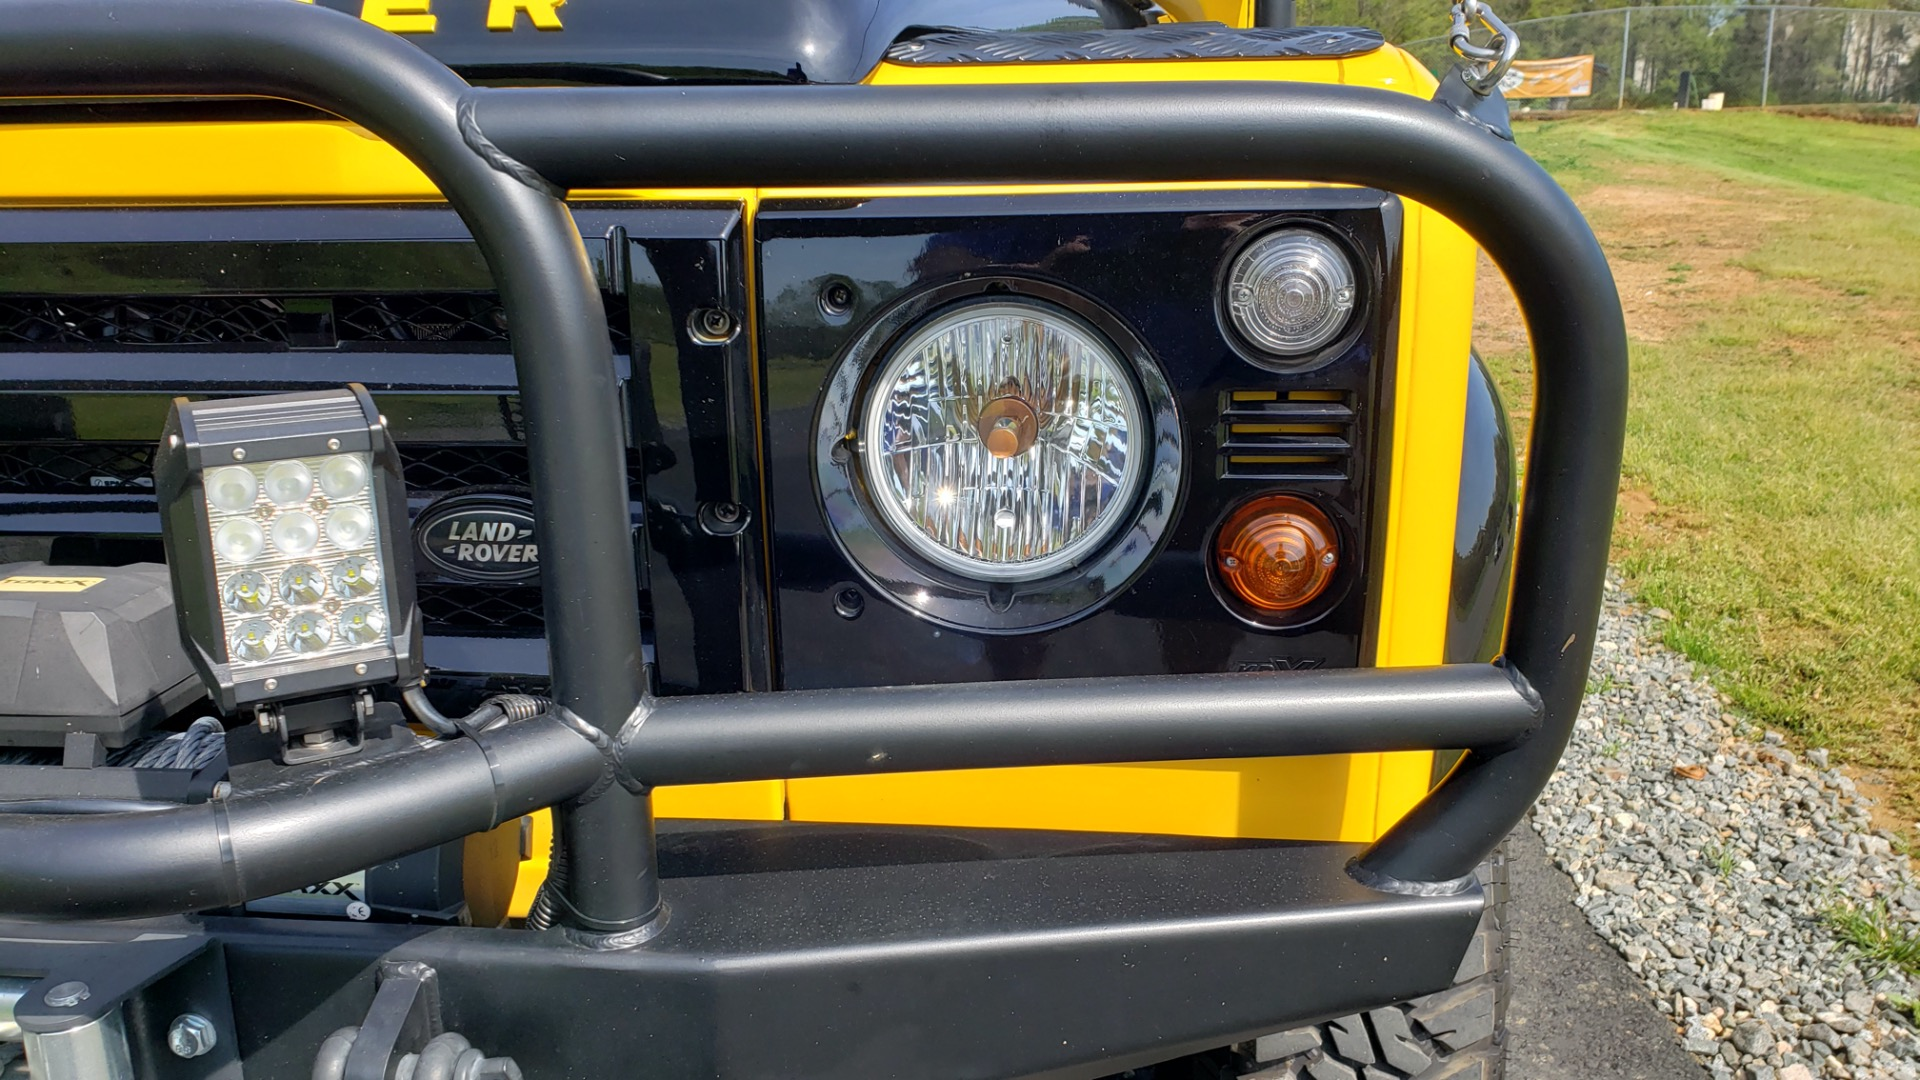 Used 1989 Land Rover Defender 110 4x4 Custom / Fully Restored / Fuel Injected V8 / 5-Spd Man for sale $60,000 at Formula Imports in Charlotte NC 28227 51